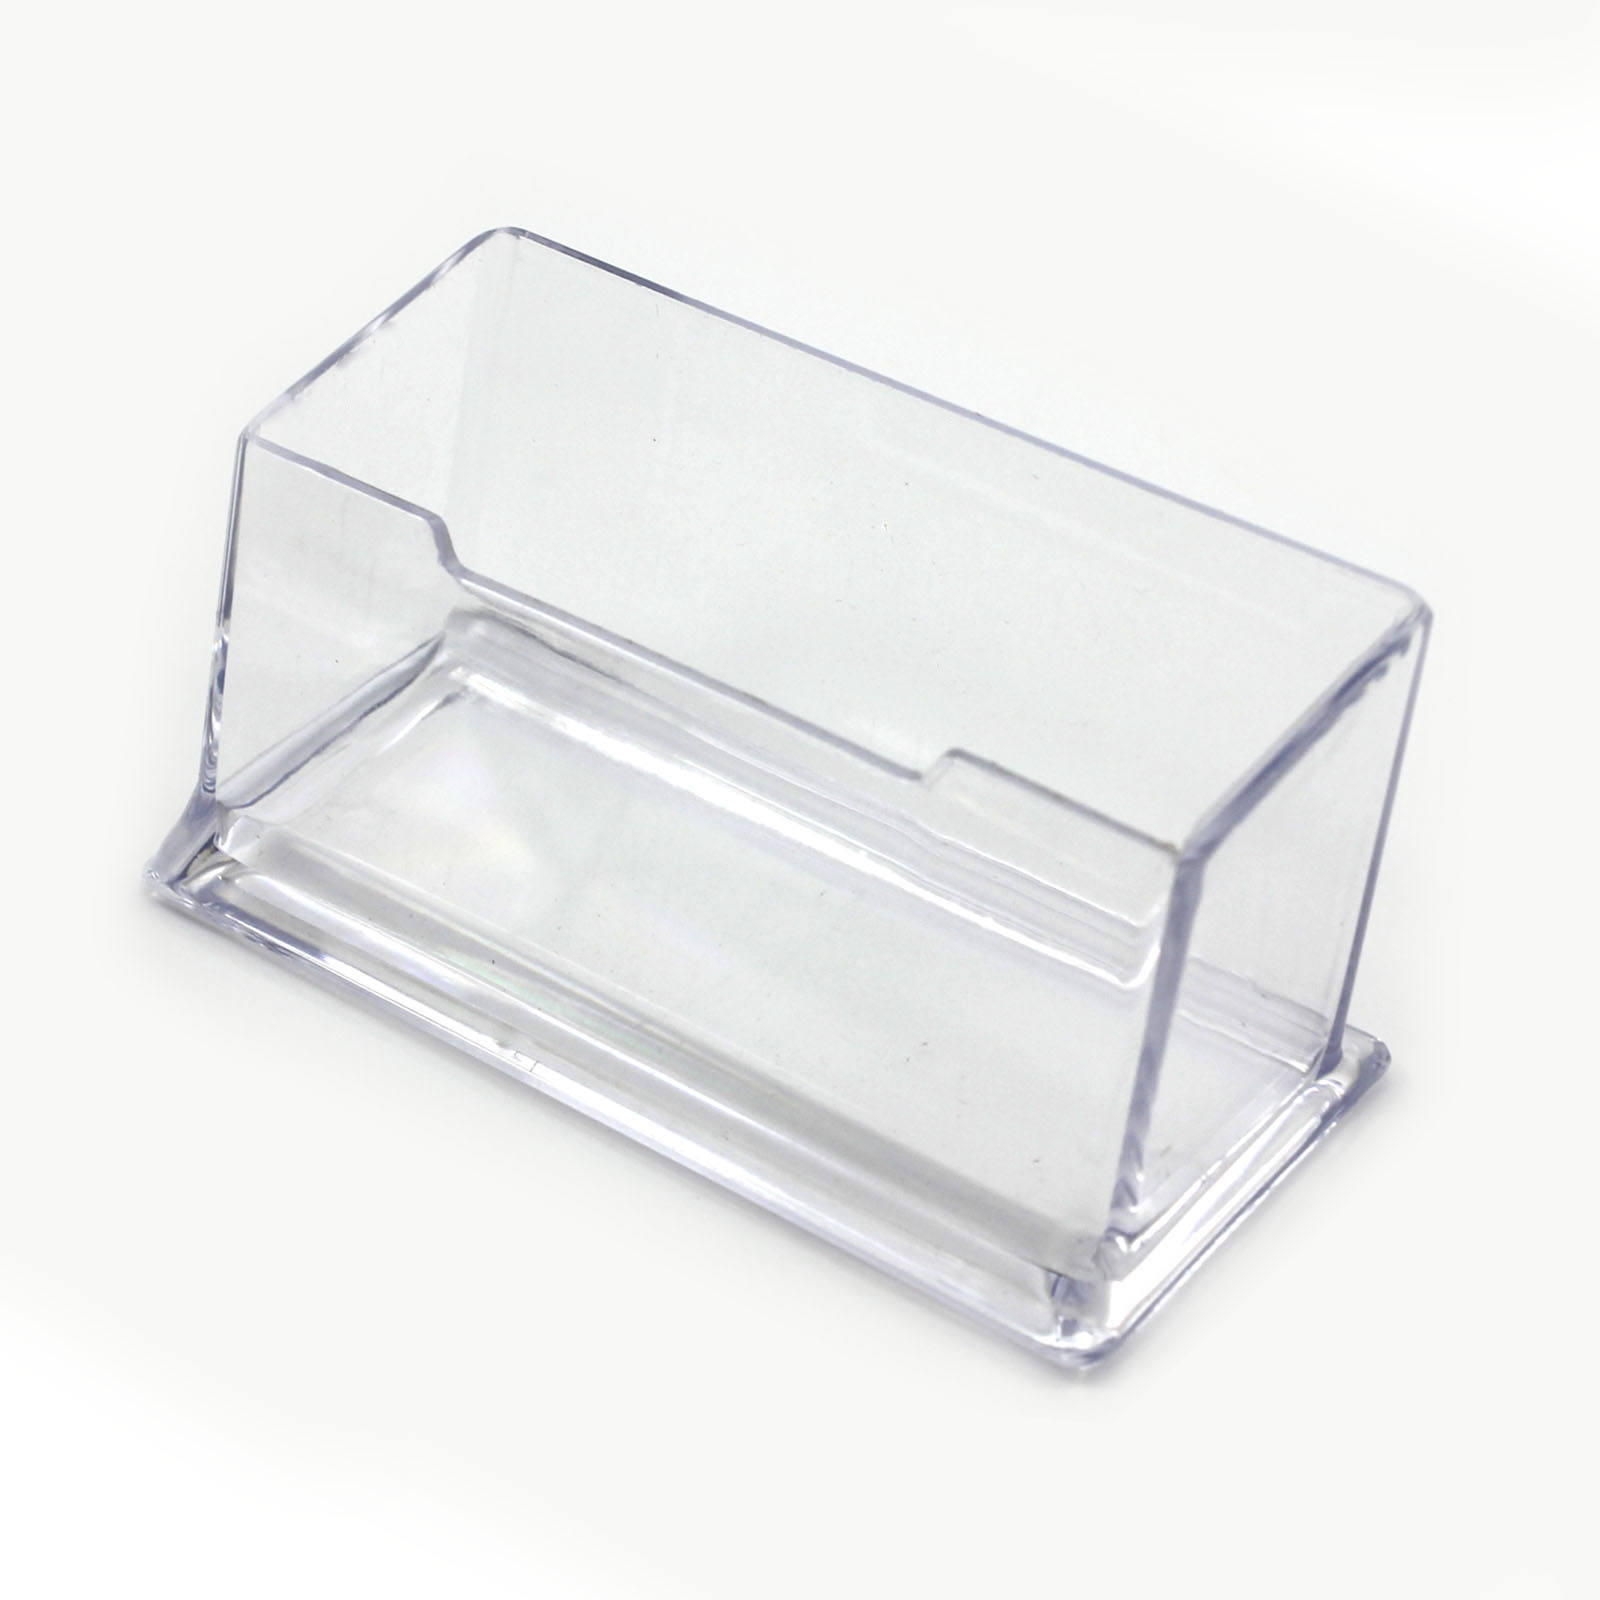 Nieuwe Clear Desk Plank Opbergbox Display Stand <span class=keywords><strong>Acryl</strong></span> Plastic Transparante Desktop Visitekaarthouder